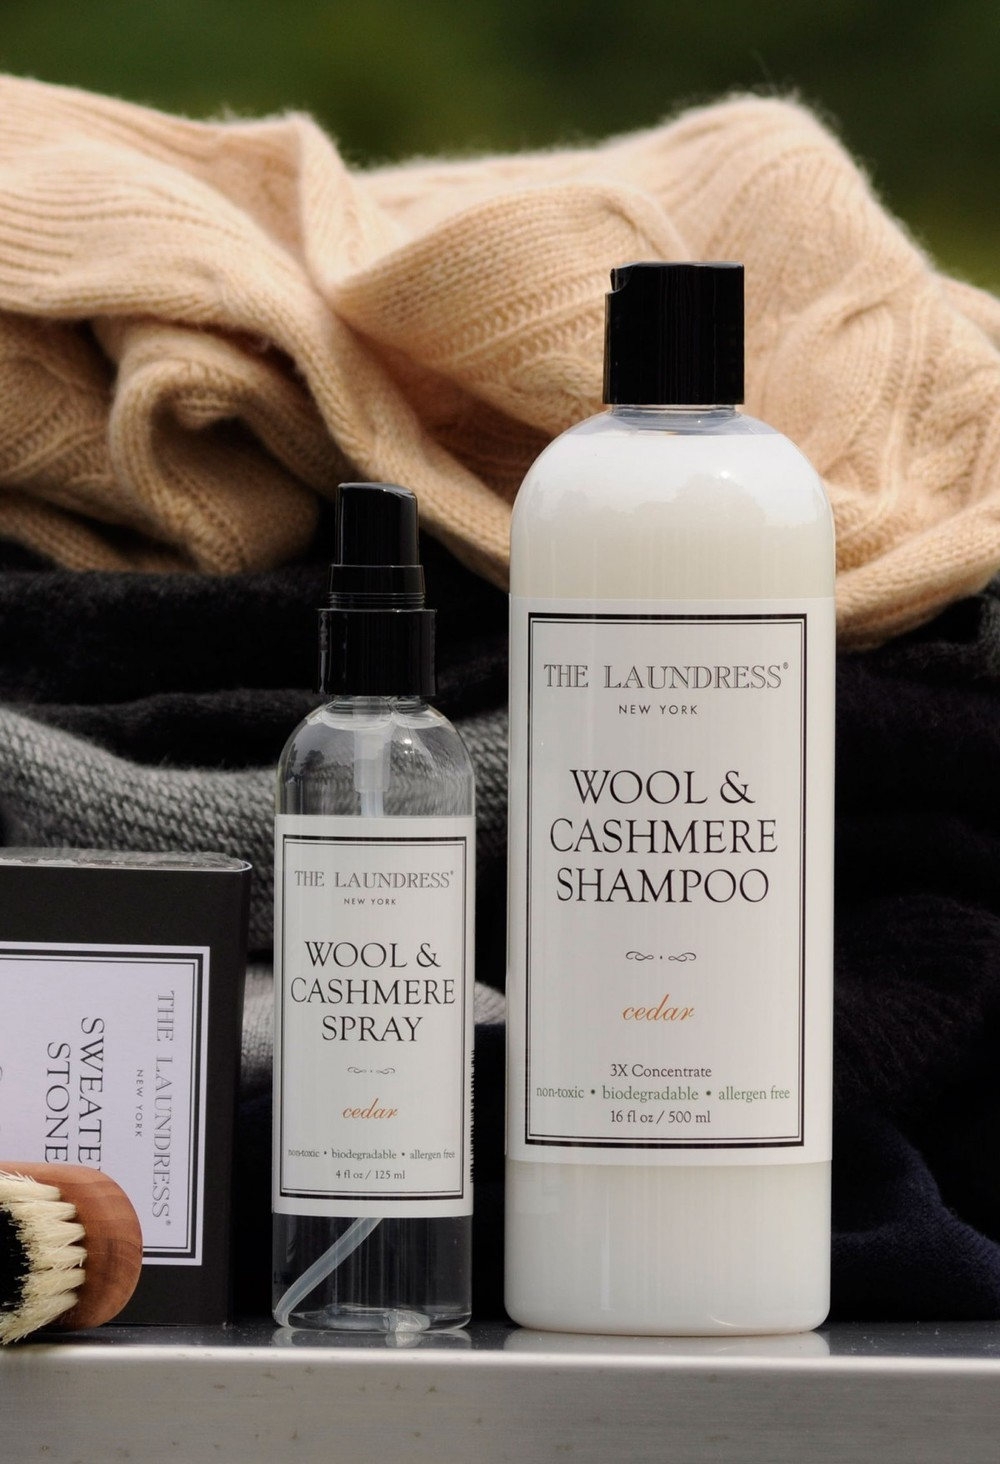 The Laundress Cashmere Shampoo & Spray